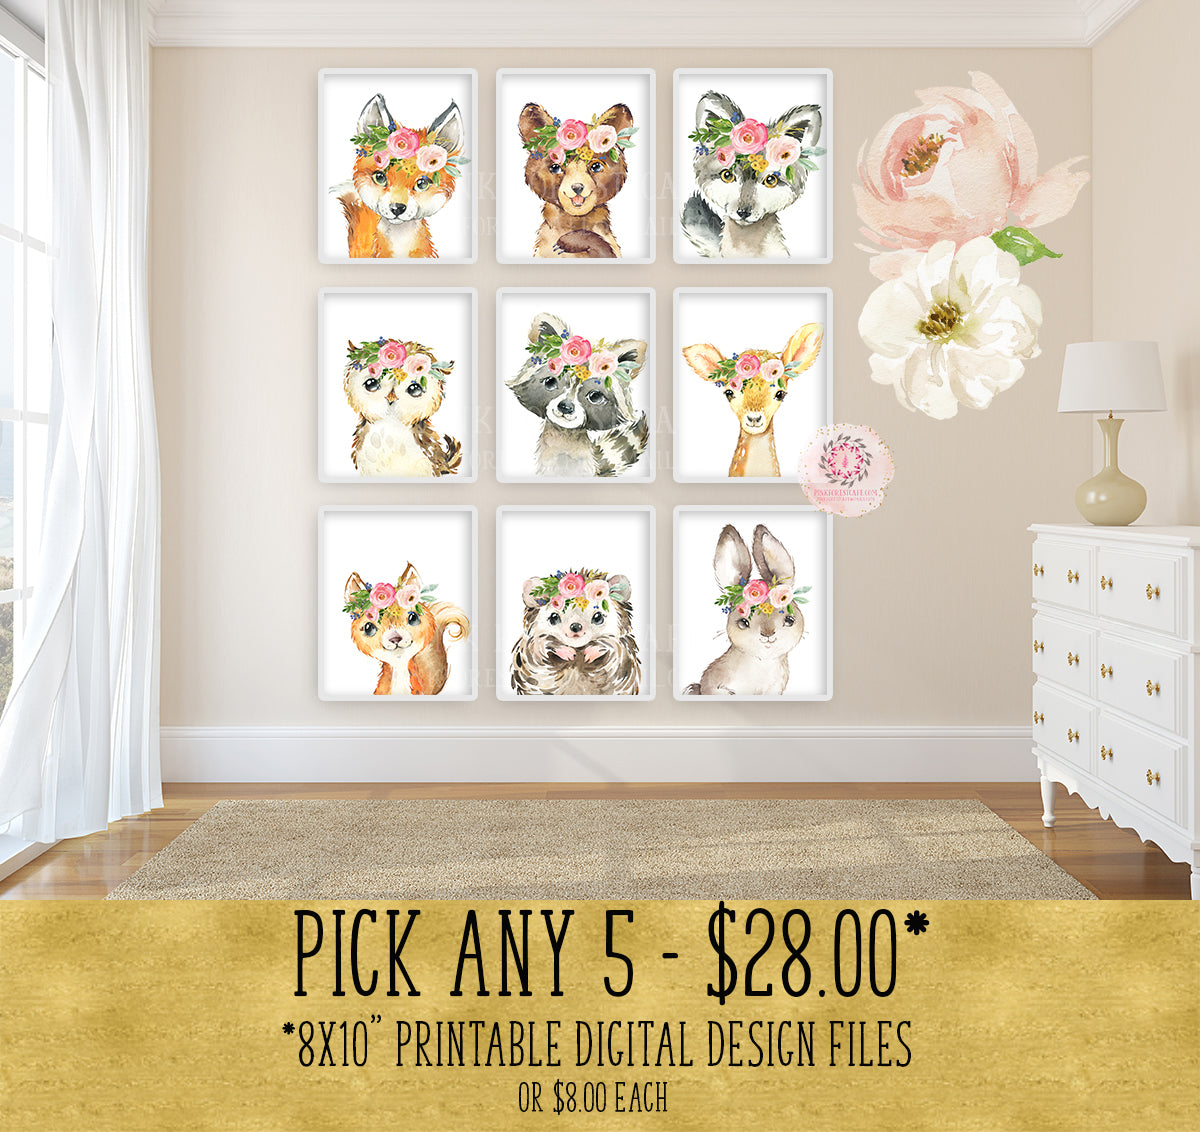 5 - Choose From 9 Boho Fox Bear Deer Bunny Wall Art Print Woodland Floral Nursery Baby Girl Room Hedgehog Wolf Squirrel Owl Raccoon Blush Floral Bohemian Watercolor Set Prints Printable Decor